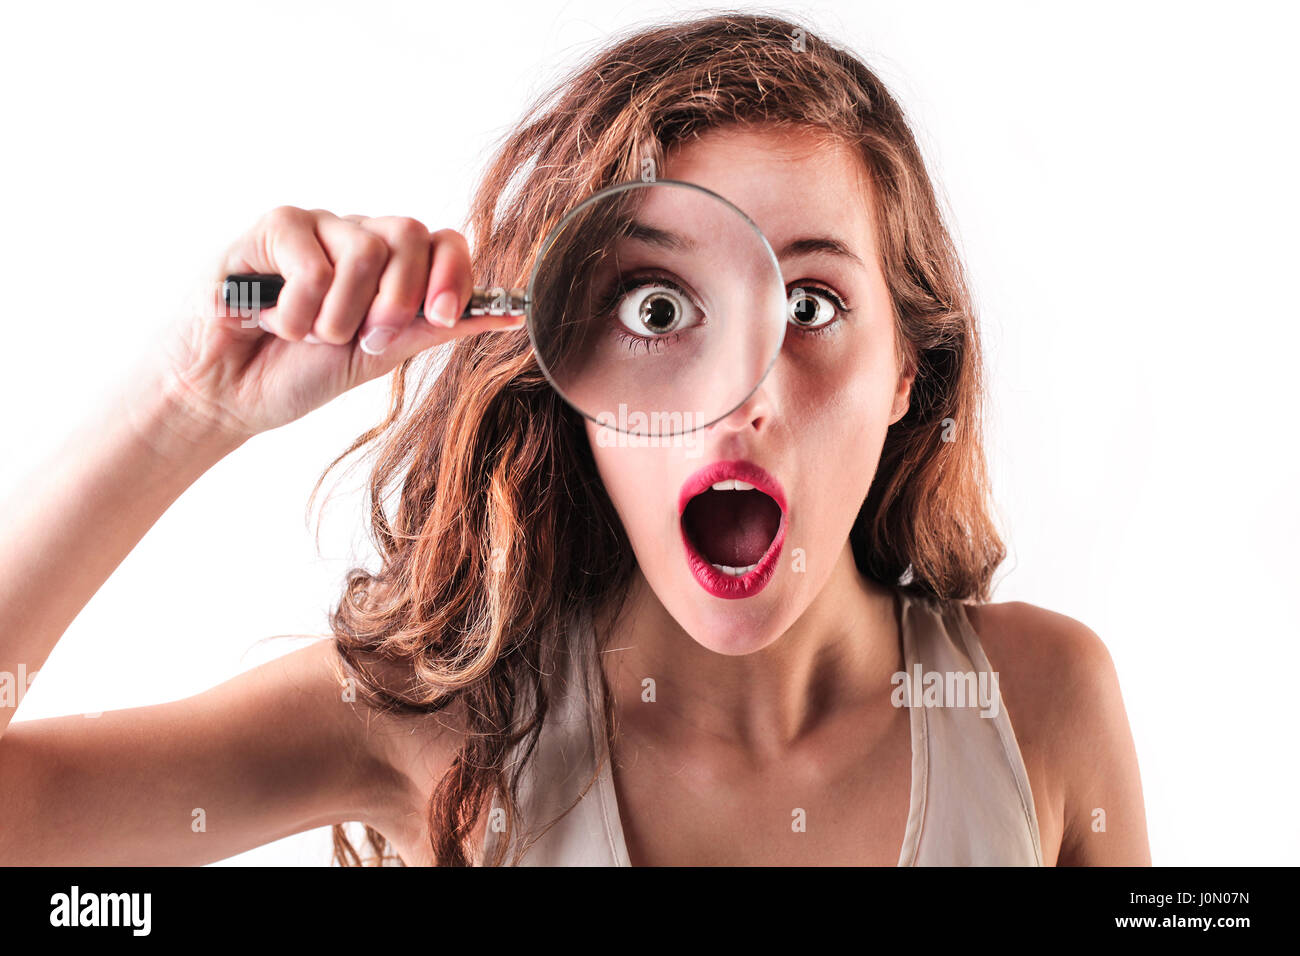 Brunette woman with magnifying glass - Stock Image